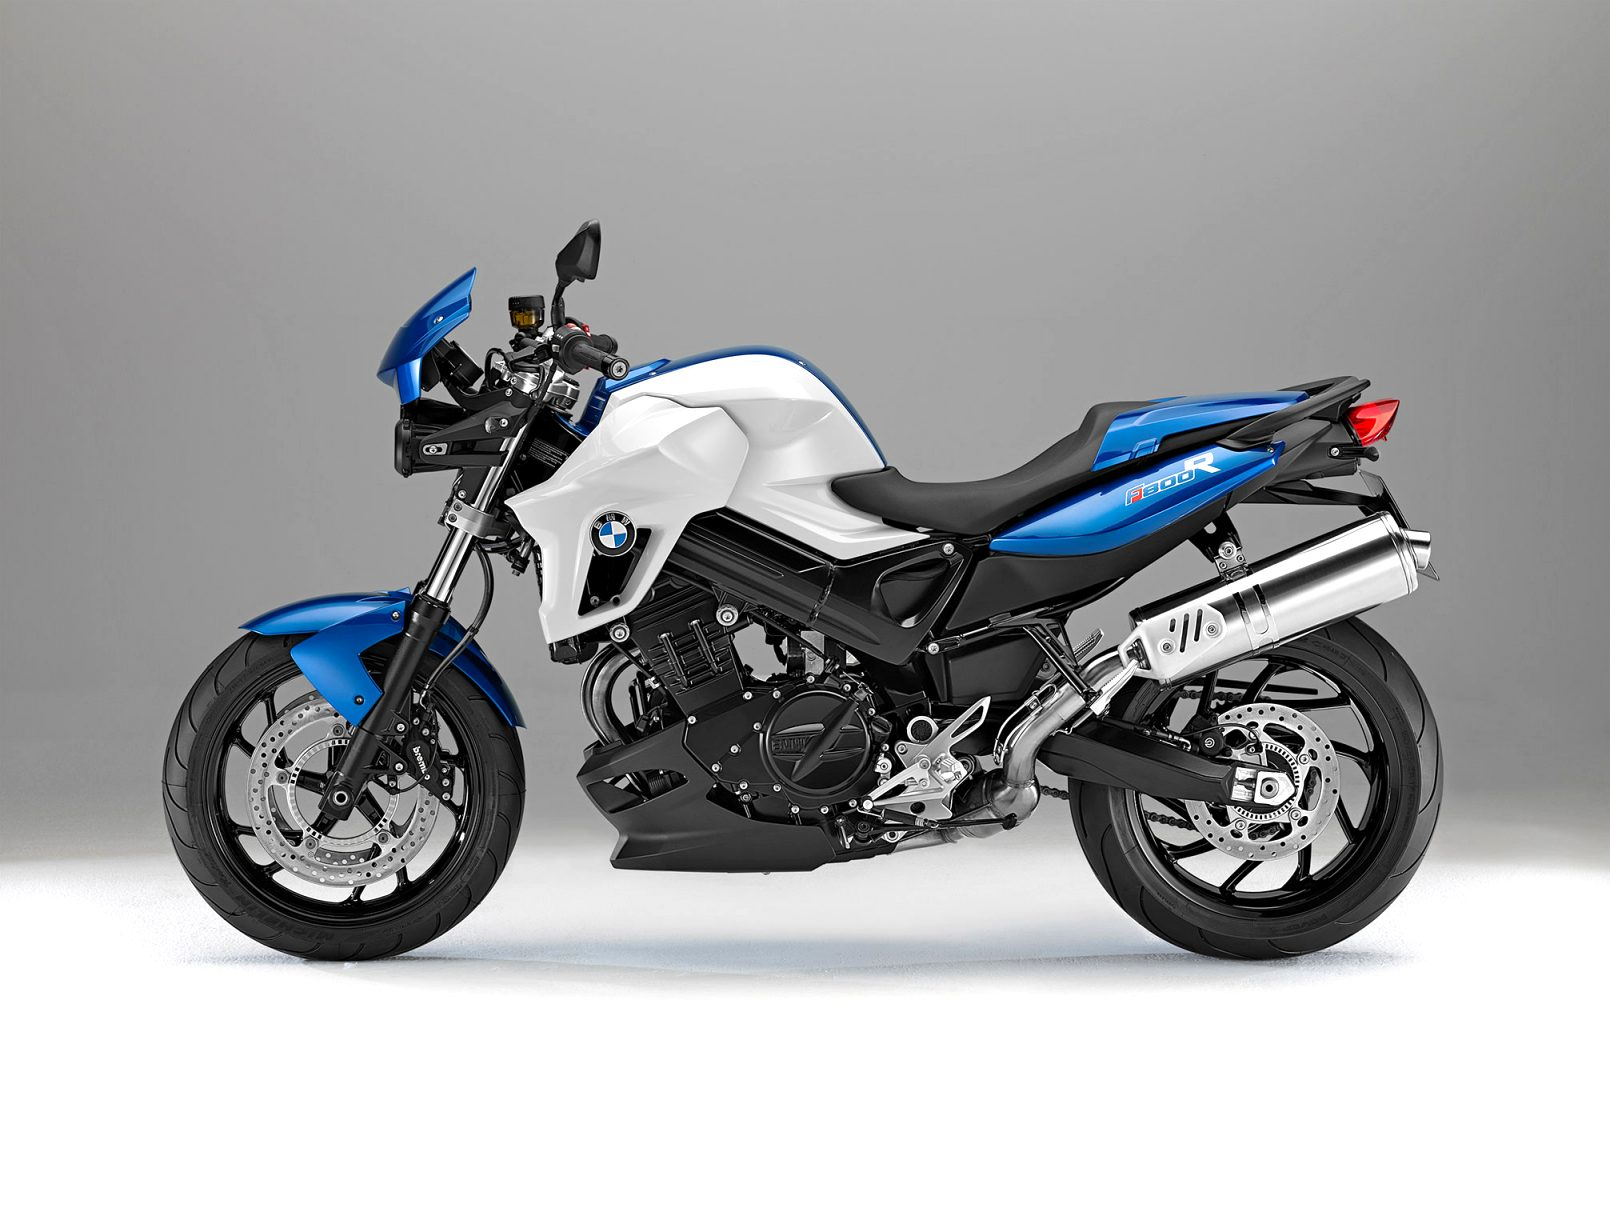 2021 BMW f800r Pricing